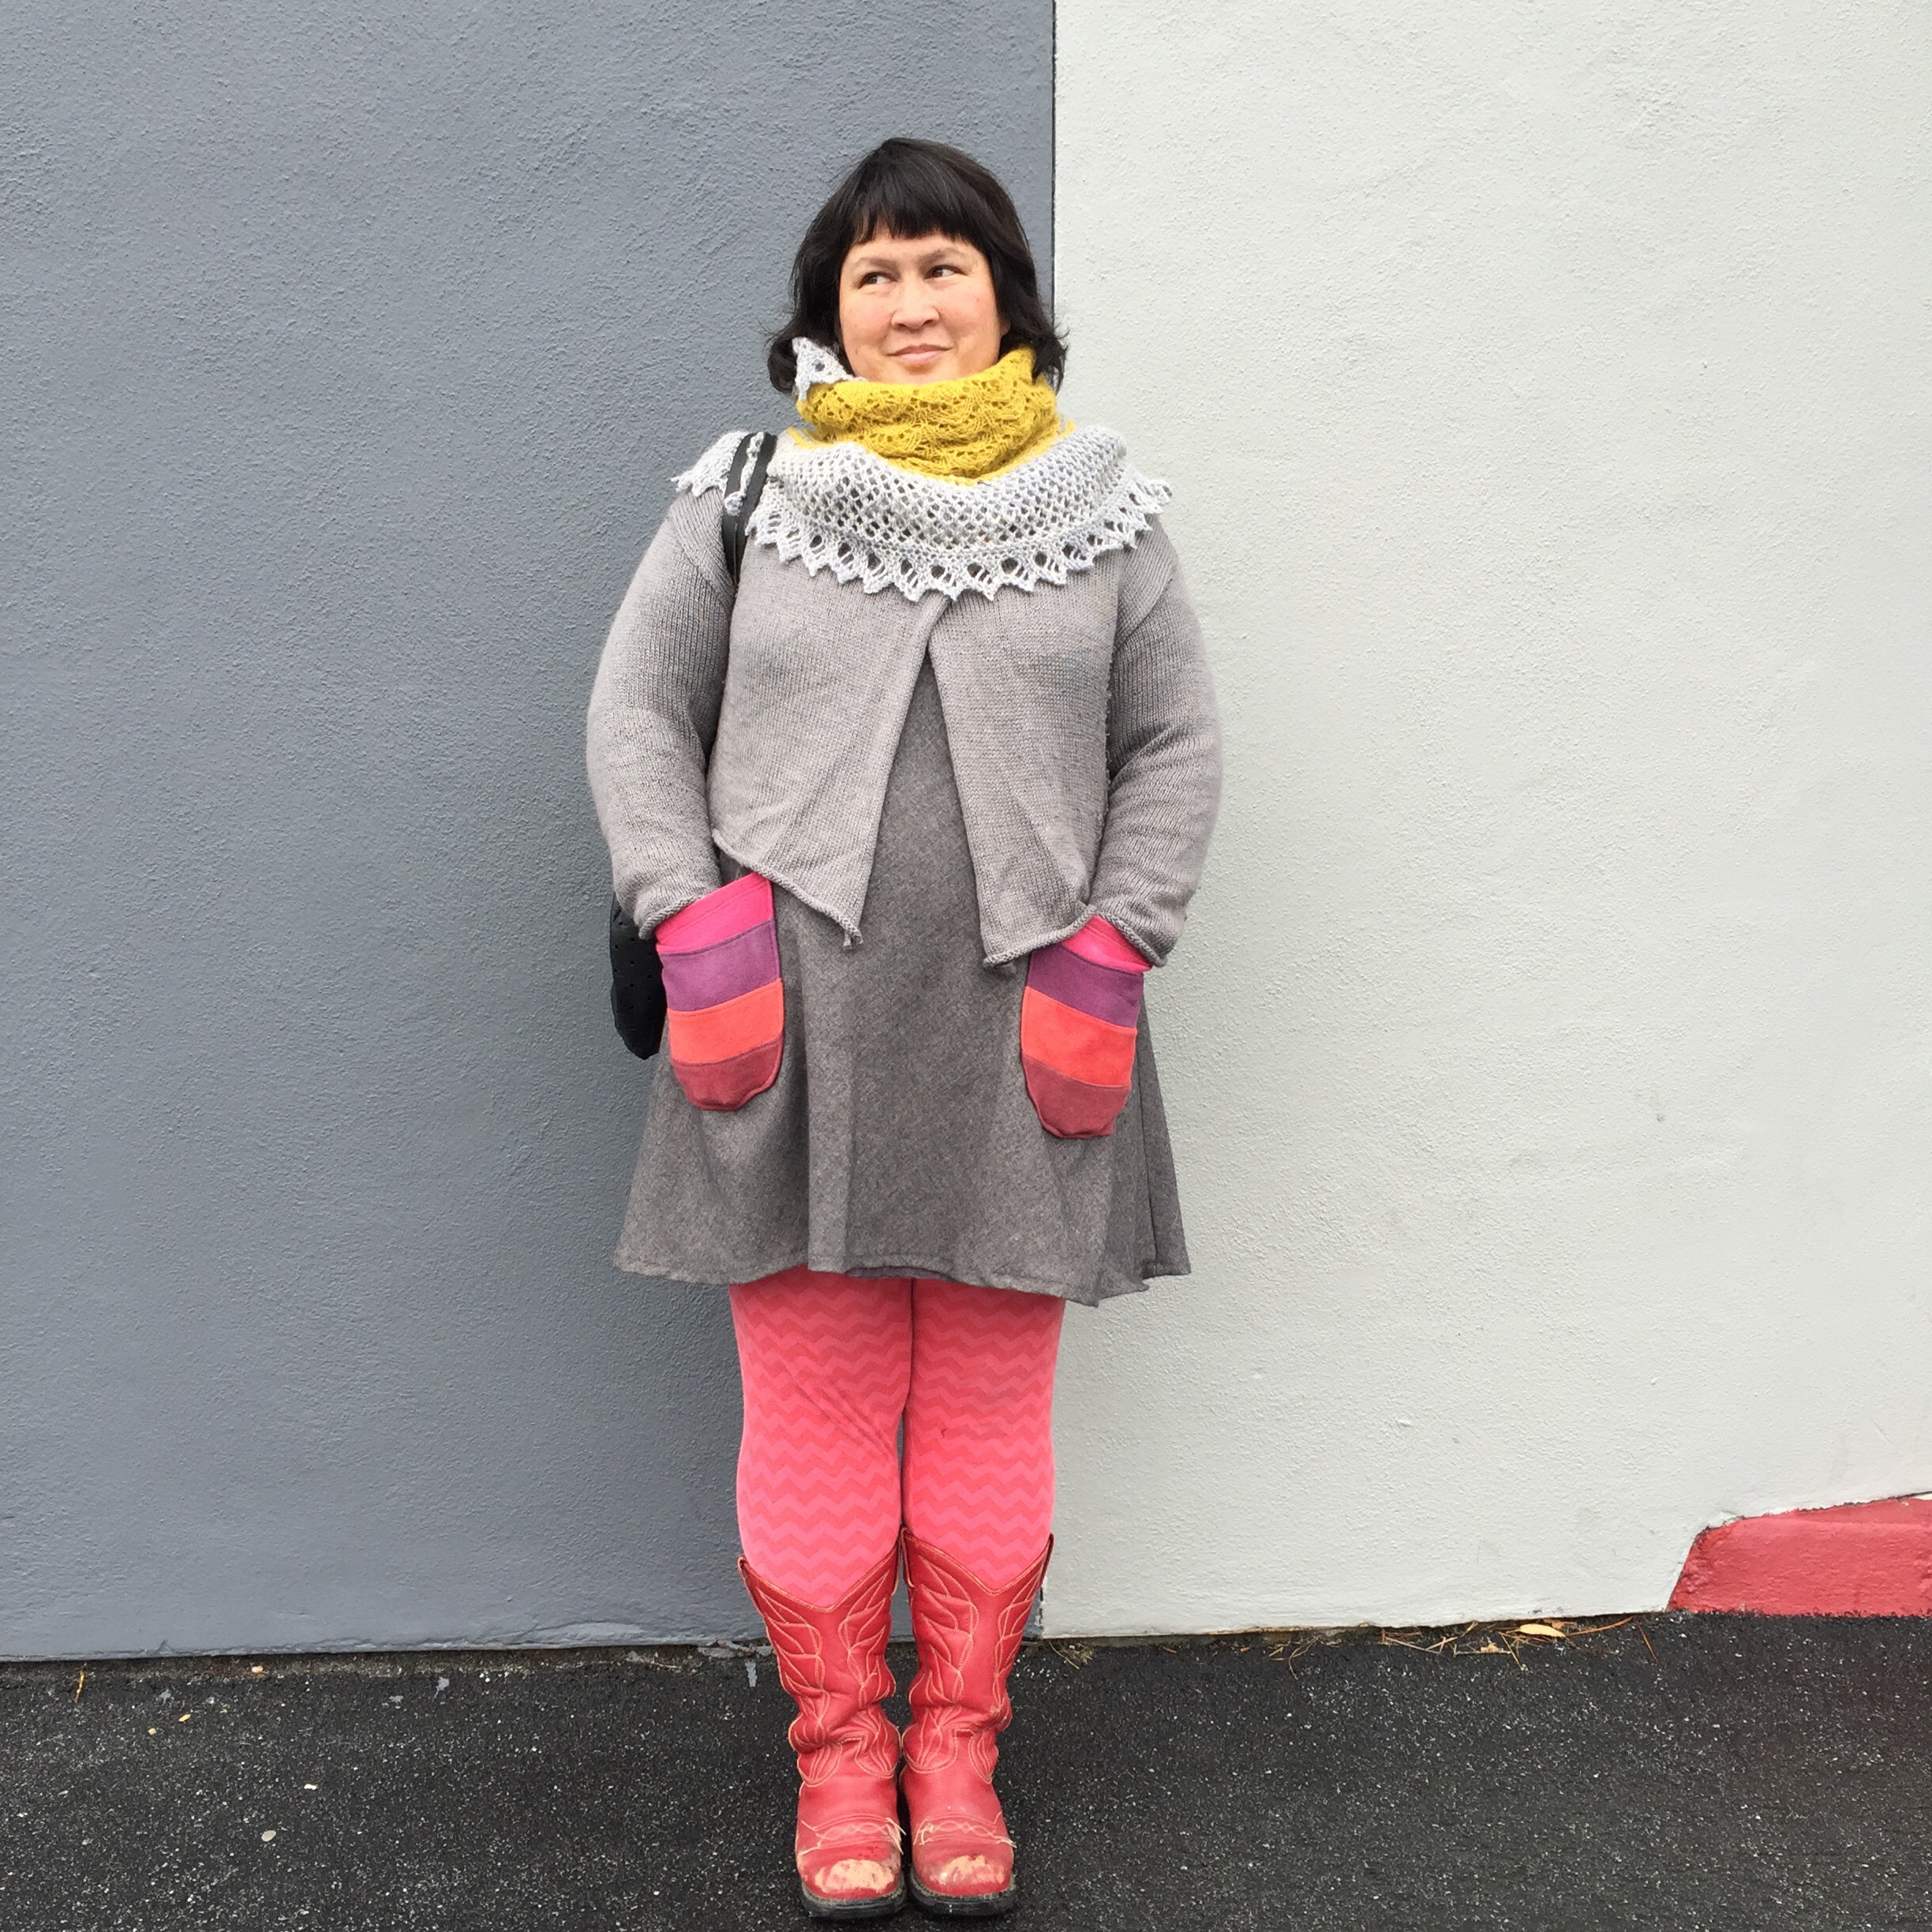 Sonyaphilip: Color + Gray edition of #handmadewardrobechronicles Liz Christie shawl by @throughtheloops; cardigan (own design); #100actsofsewing Dress no. 1 in lined wool with naturally dyed wool pockets by @avfkw; leggings (own pattern); and Fluevog boots